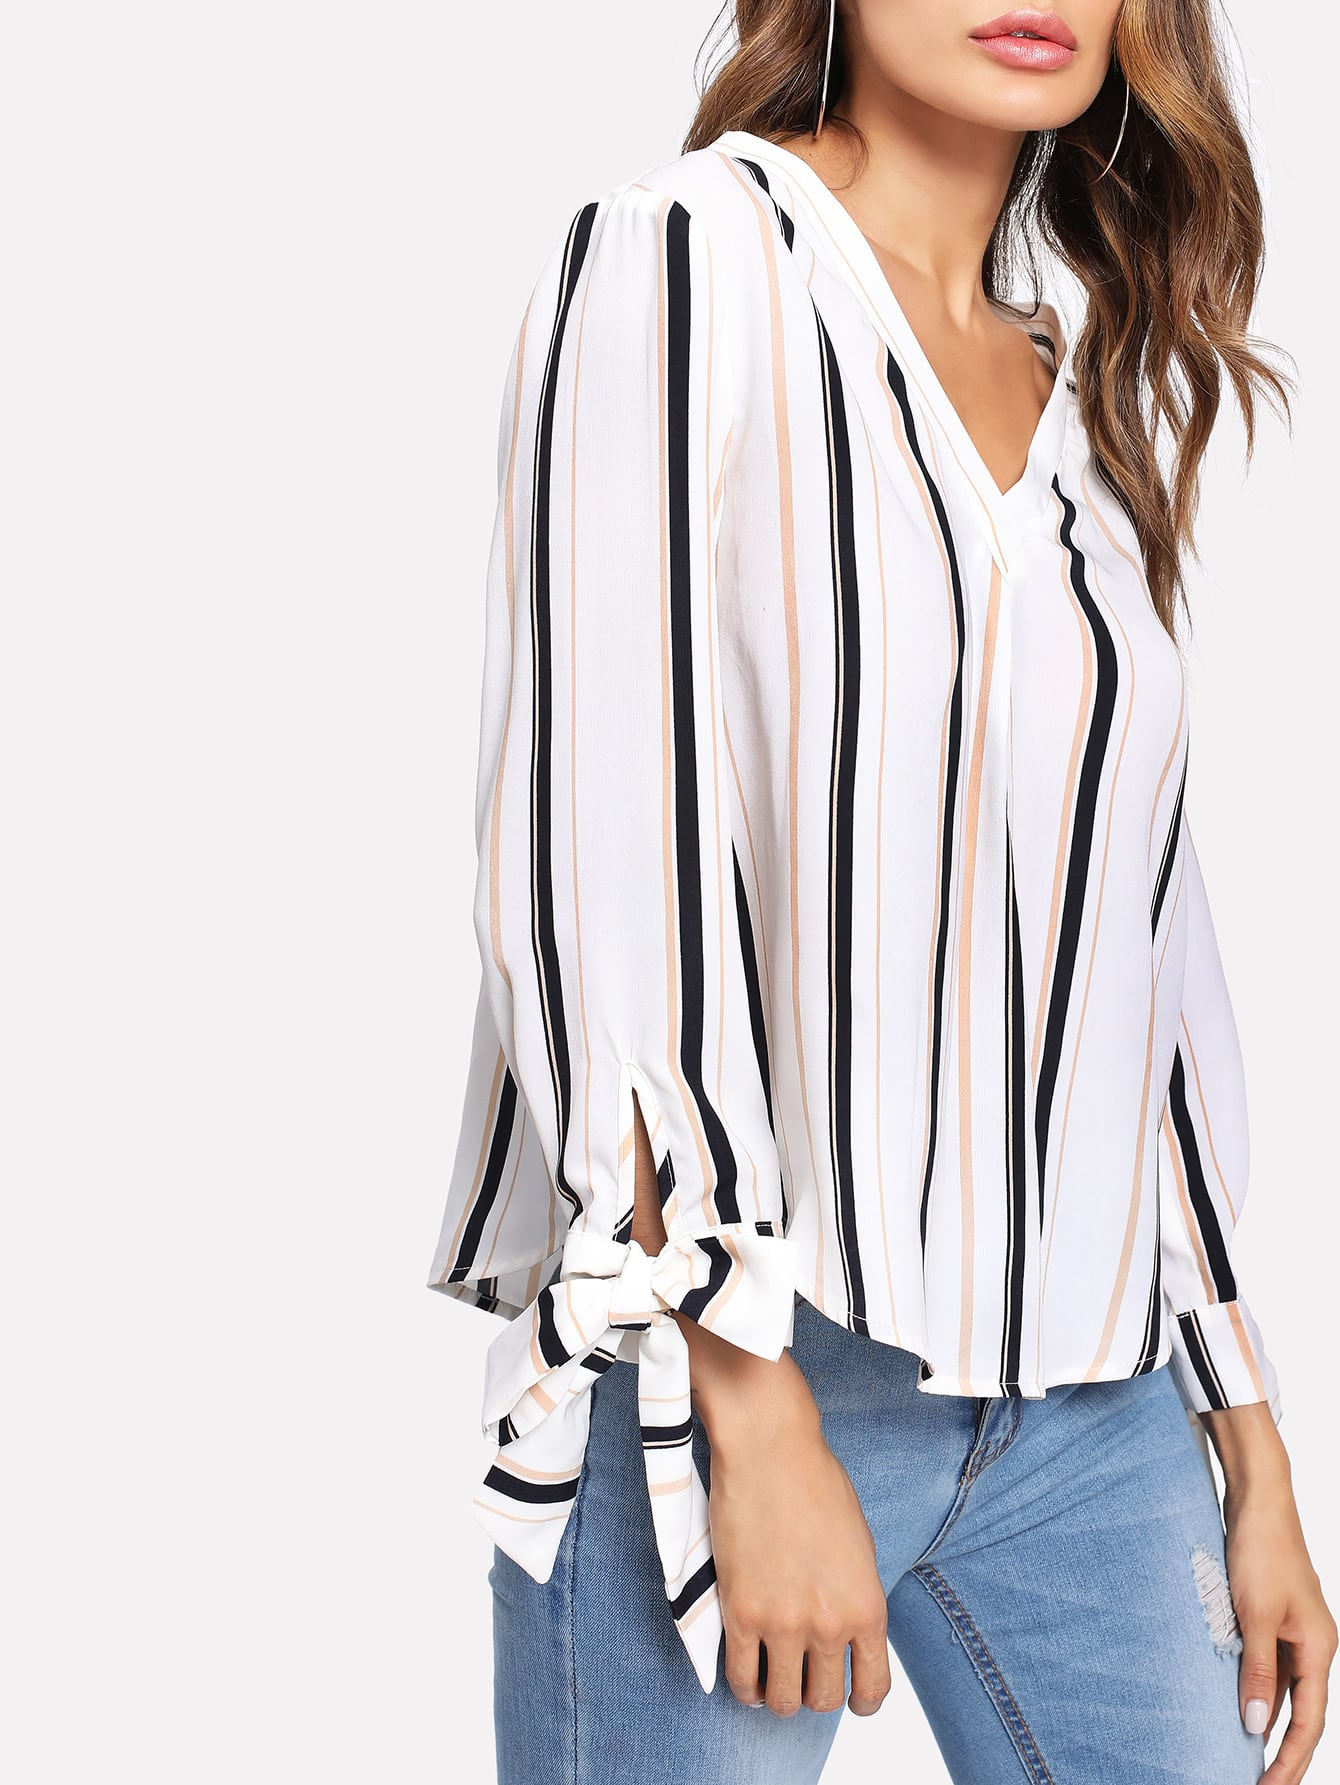 Bow Tied Cuff Vertical Striped Blouse blouse171121708